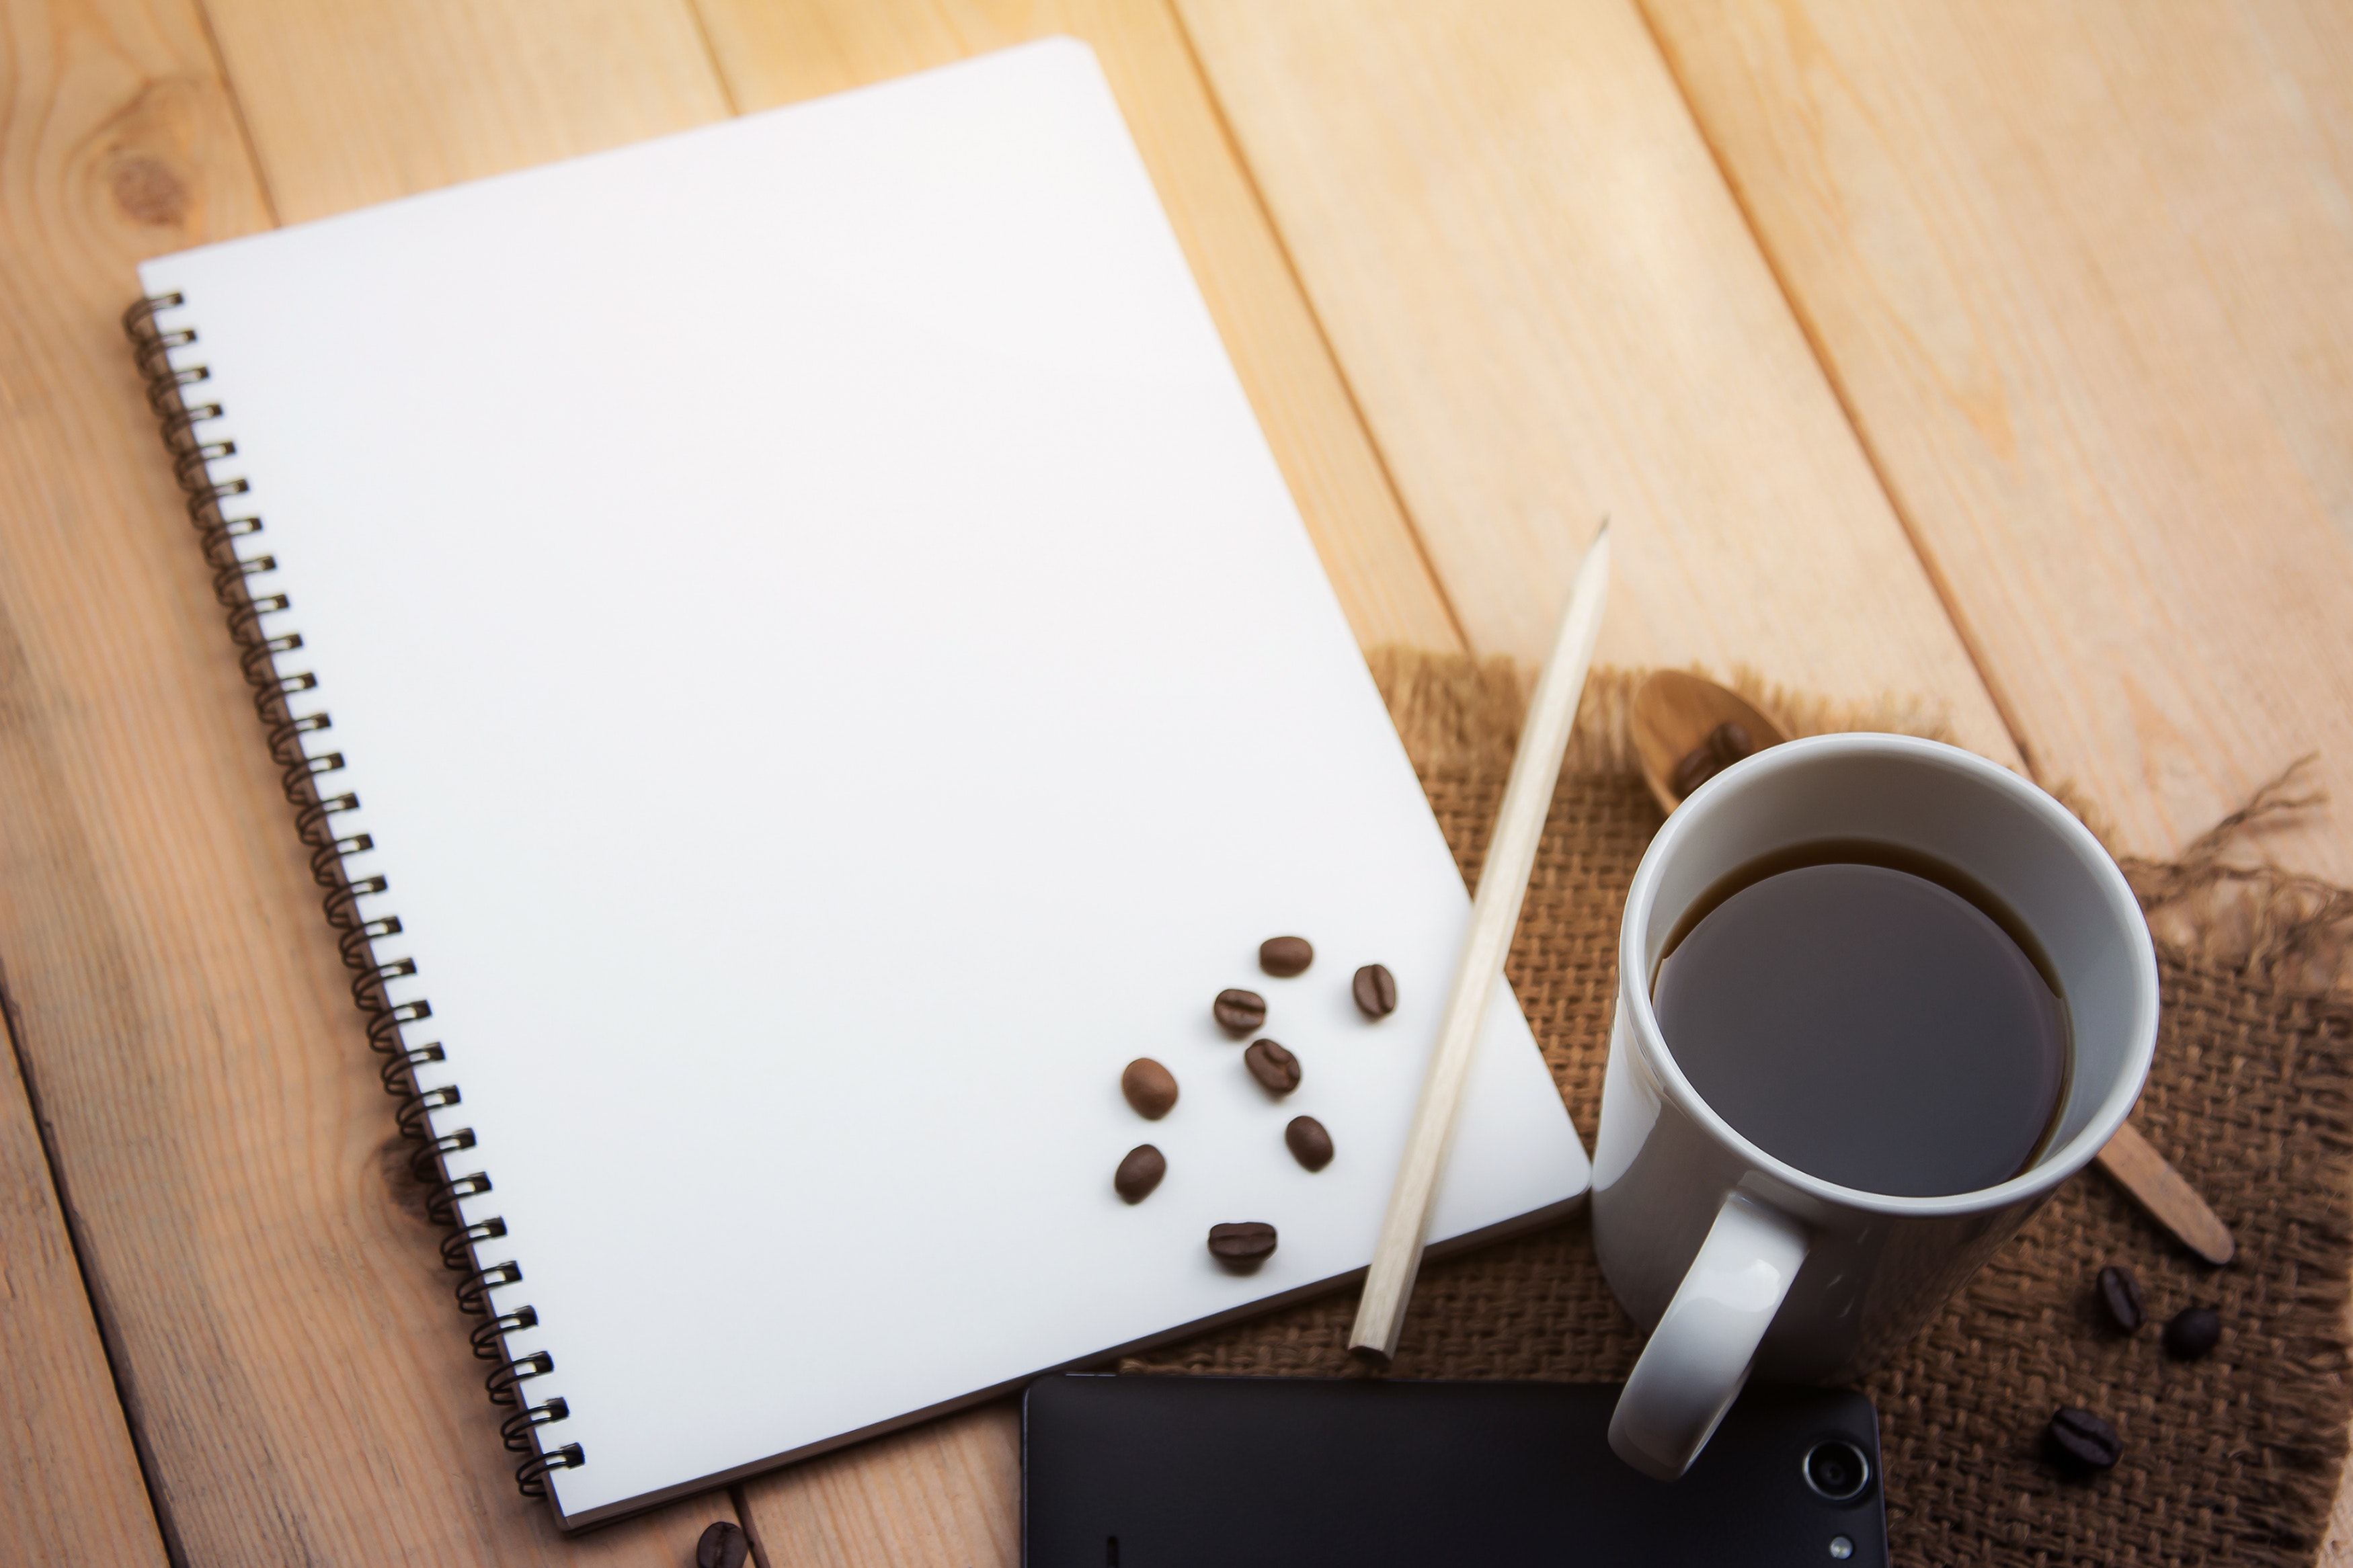 Blank paper with pen and coffee cup on wood table · Free Stock Photo